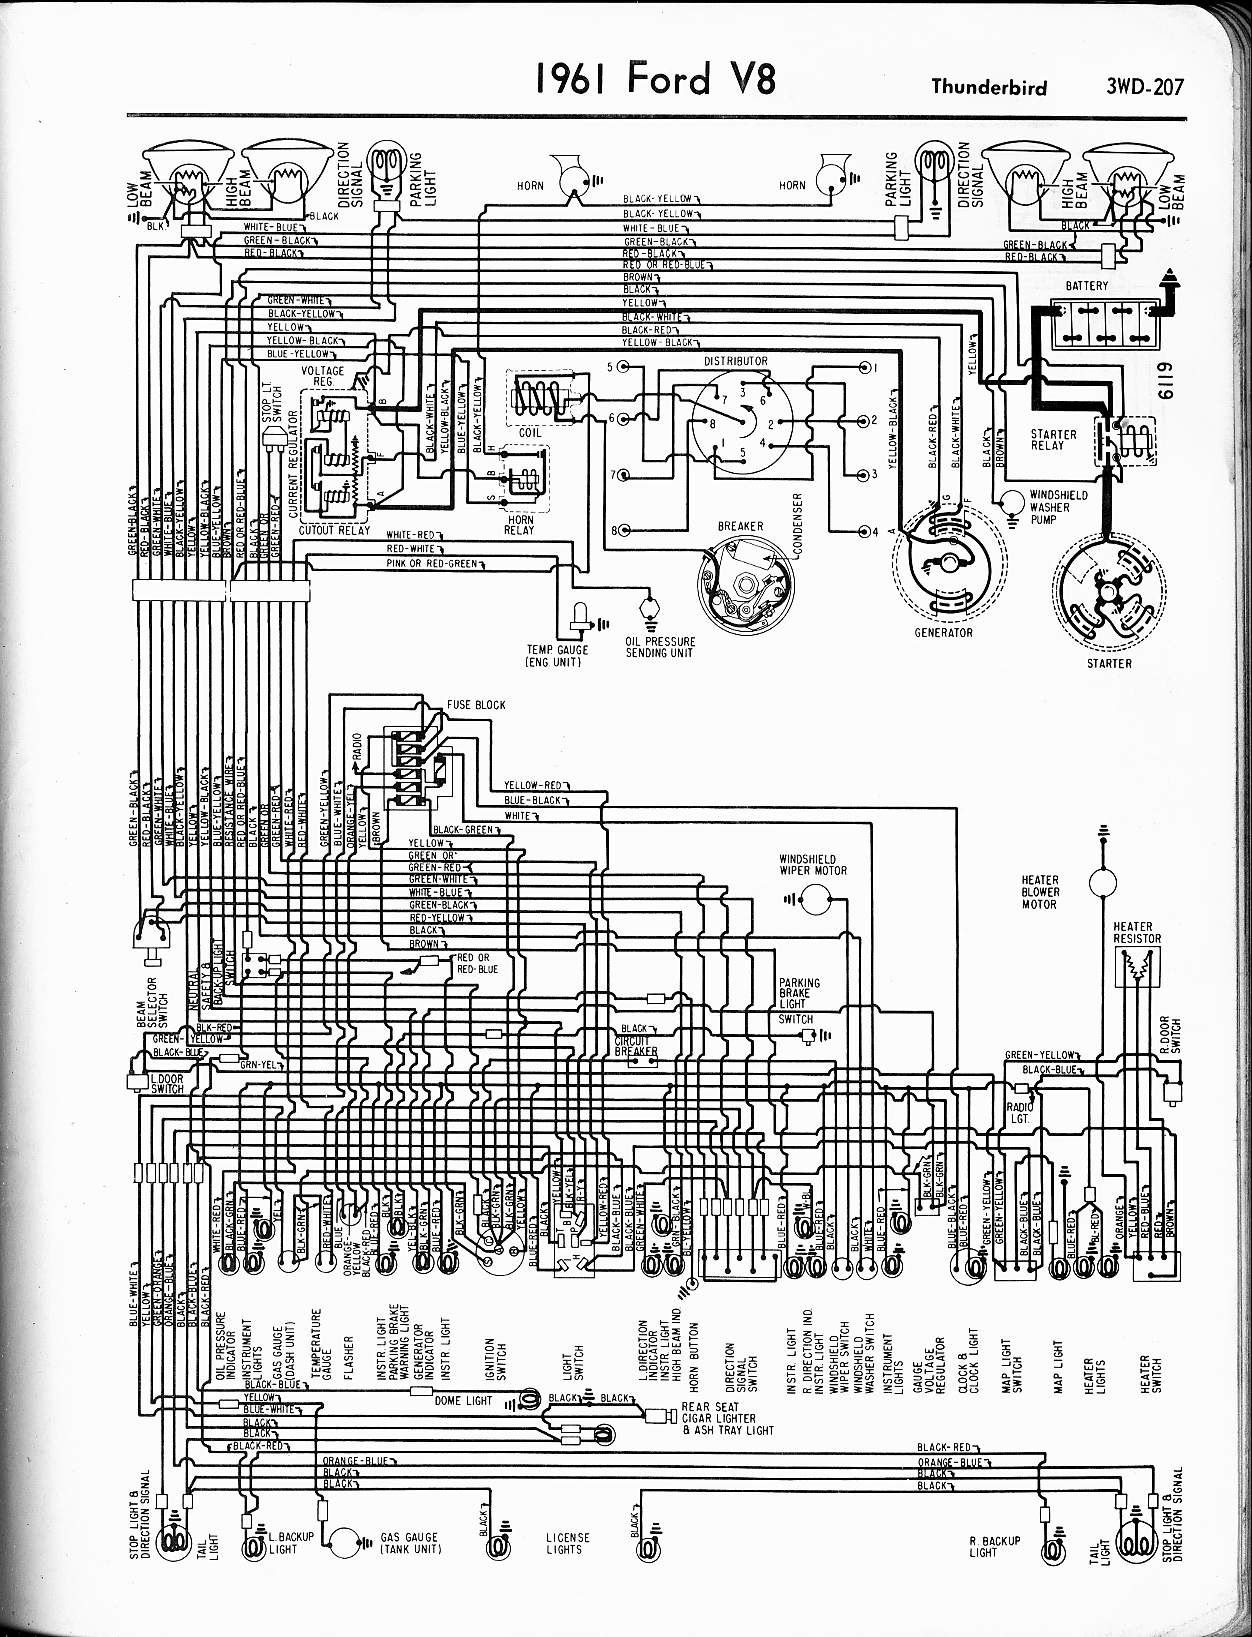 57 65 Ford Wiring Diagrams 1956 Oldsmobile Wiring Diagram 1956 Ford Wiring  Diagram